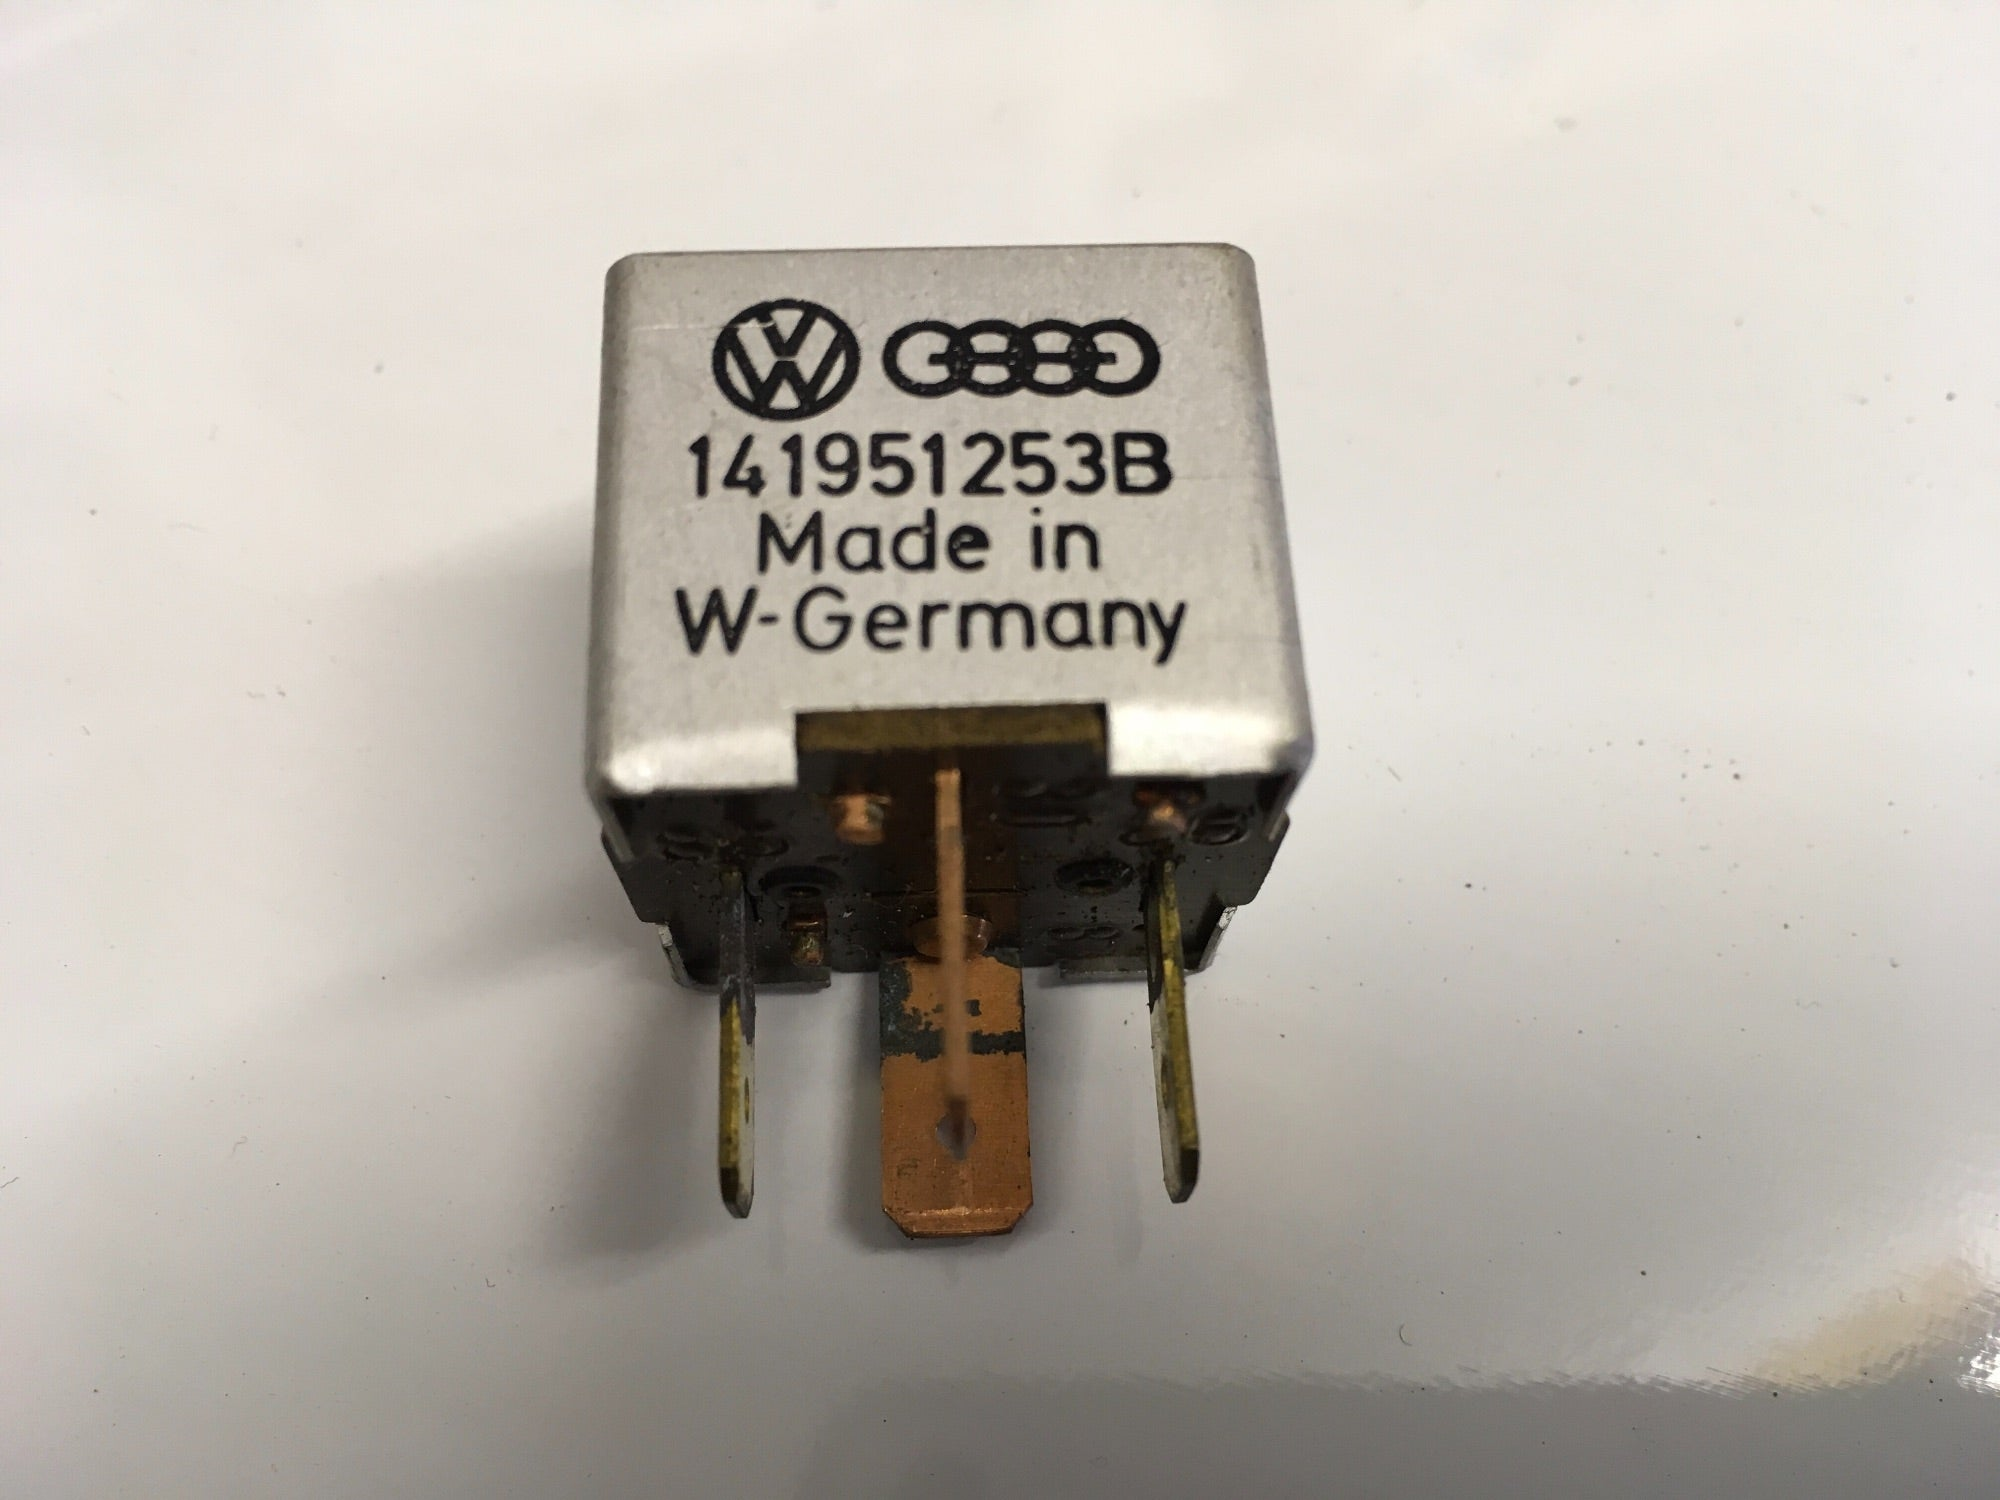 Porsche 944/924/928 Relay. Various uses 141951253B. 141 951 253 B All years. (LB173) - Woolies Workshop - Porsche 924 944 spares